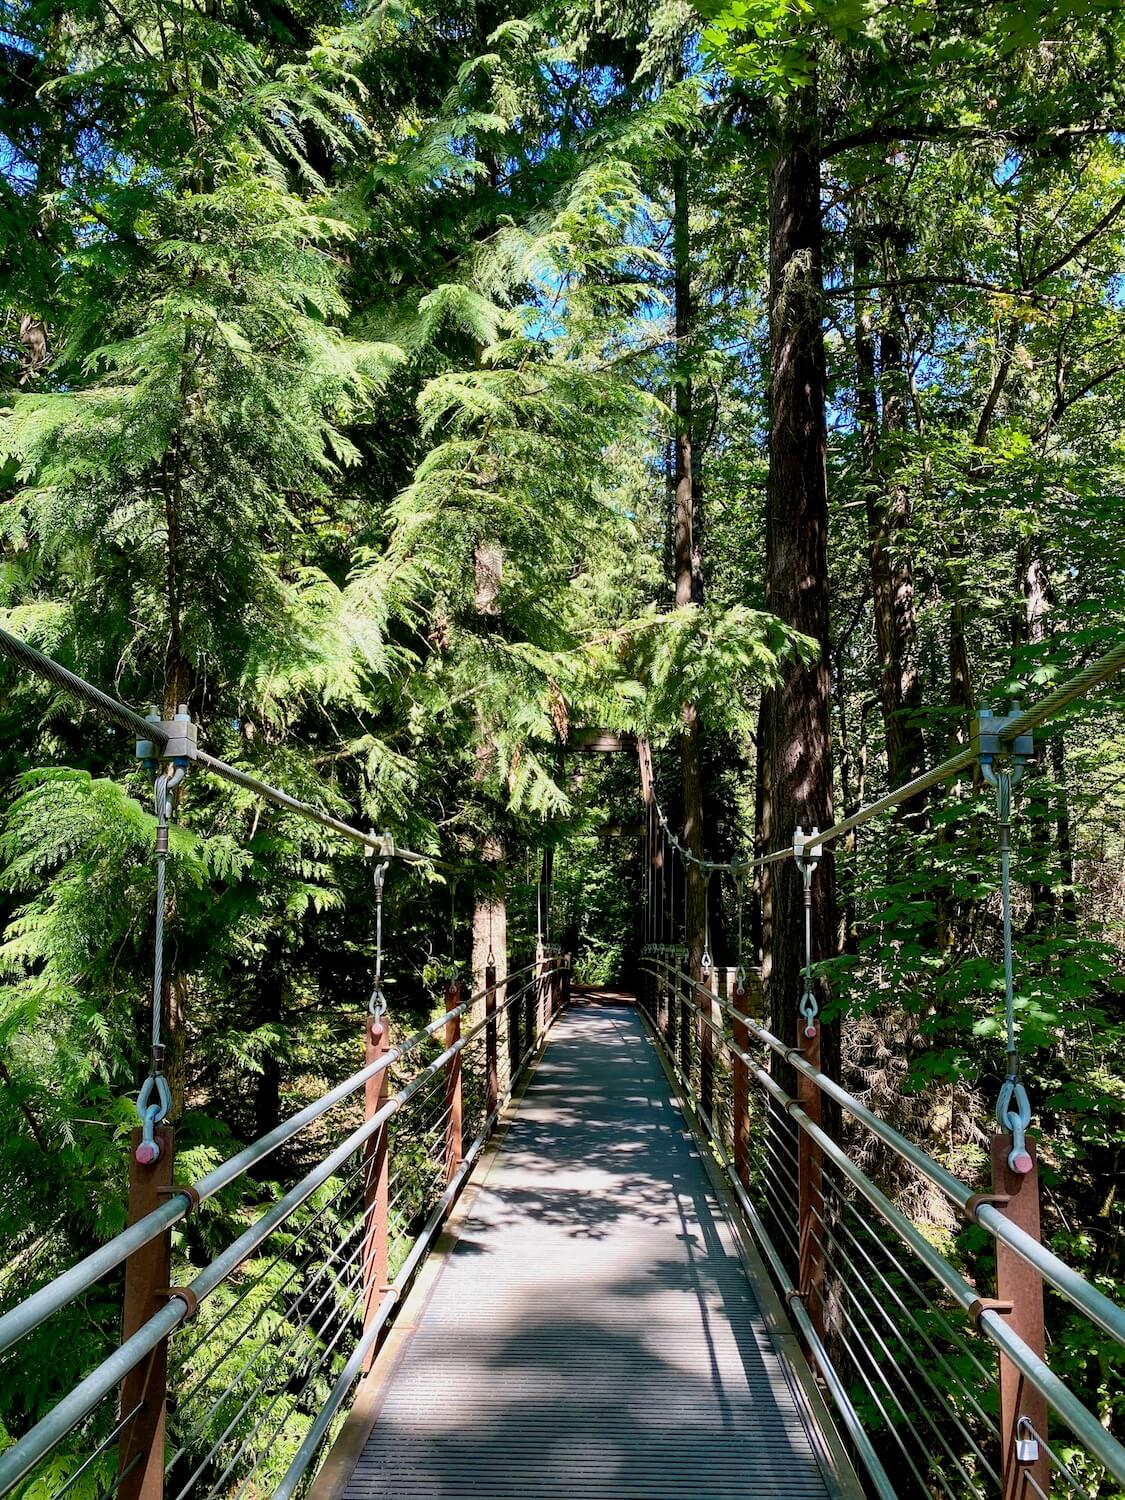 The suspension bridge at Bellevue Botanical Garden is a great park. The thick cables are connected to railings that hold the engineering contraption up under green leafy cedar and fir trees.